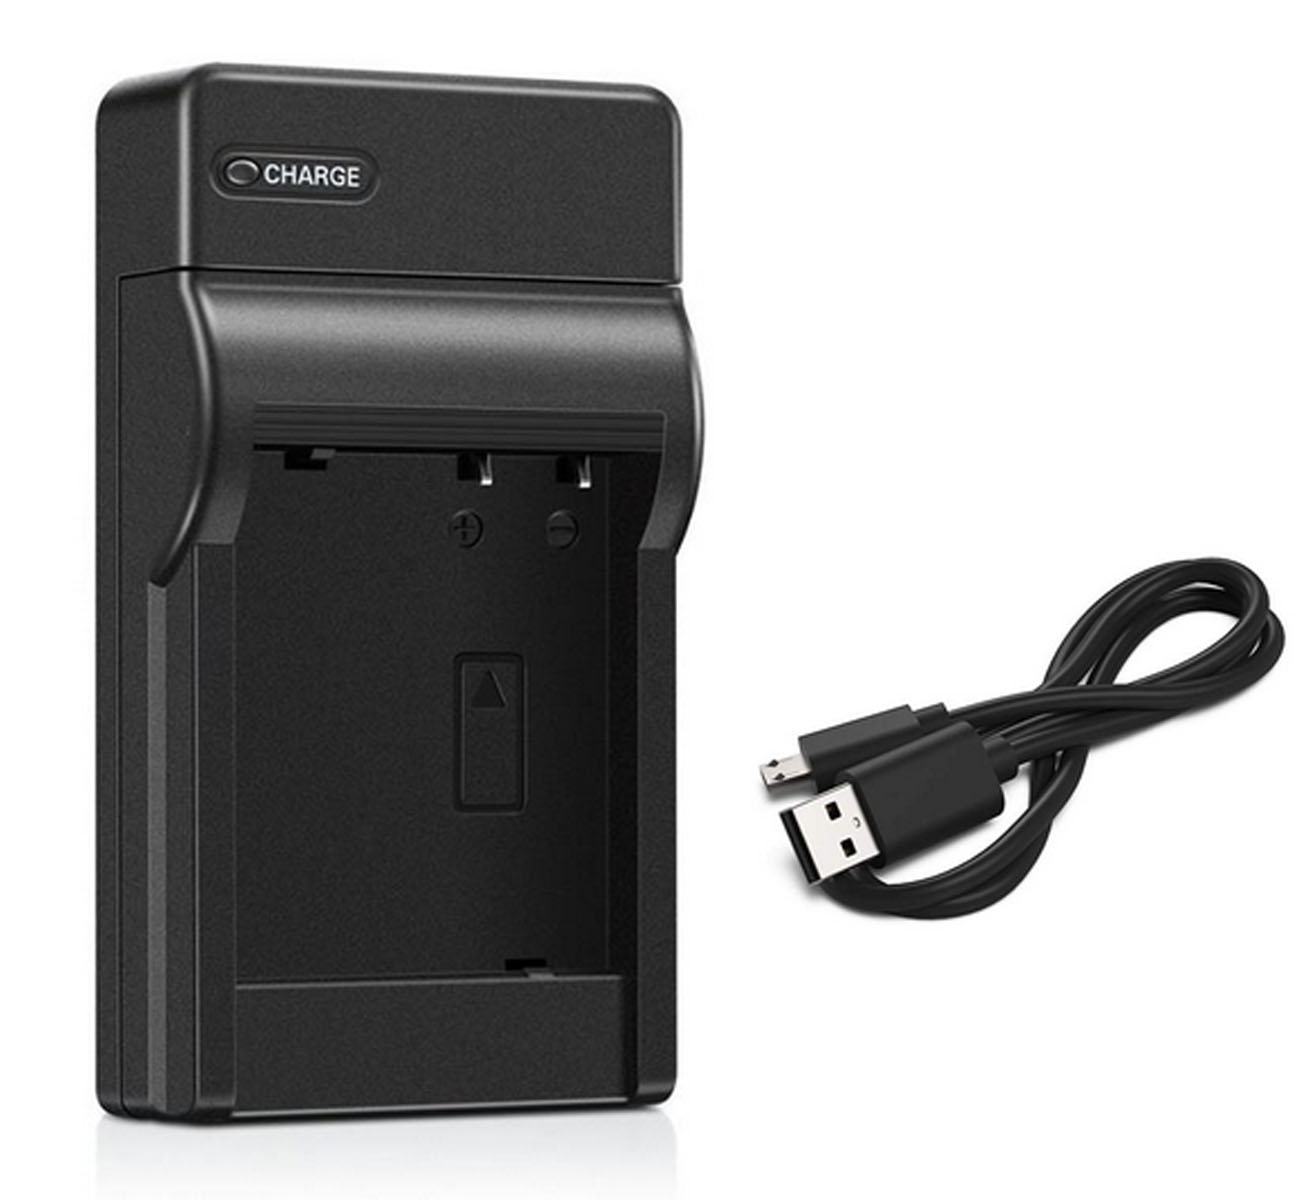 Battery Charger for <font><b>Sony</b></font> <font><b>Alpha</b></font> ILCE-<font><b>3000</b></font>, ILCE-3500, ILCE-5000,ILCE-5100,ILCE-6000,ILCE-6300,ILCE-6500 Mirrorless Digital Camera image